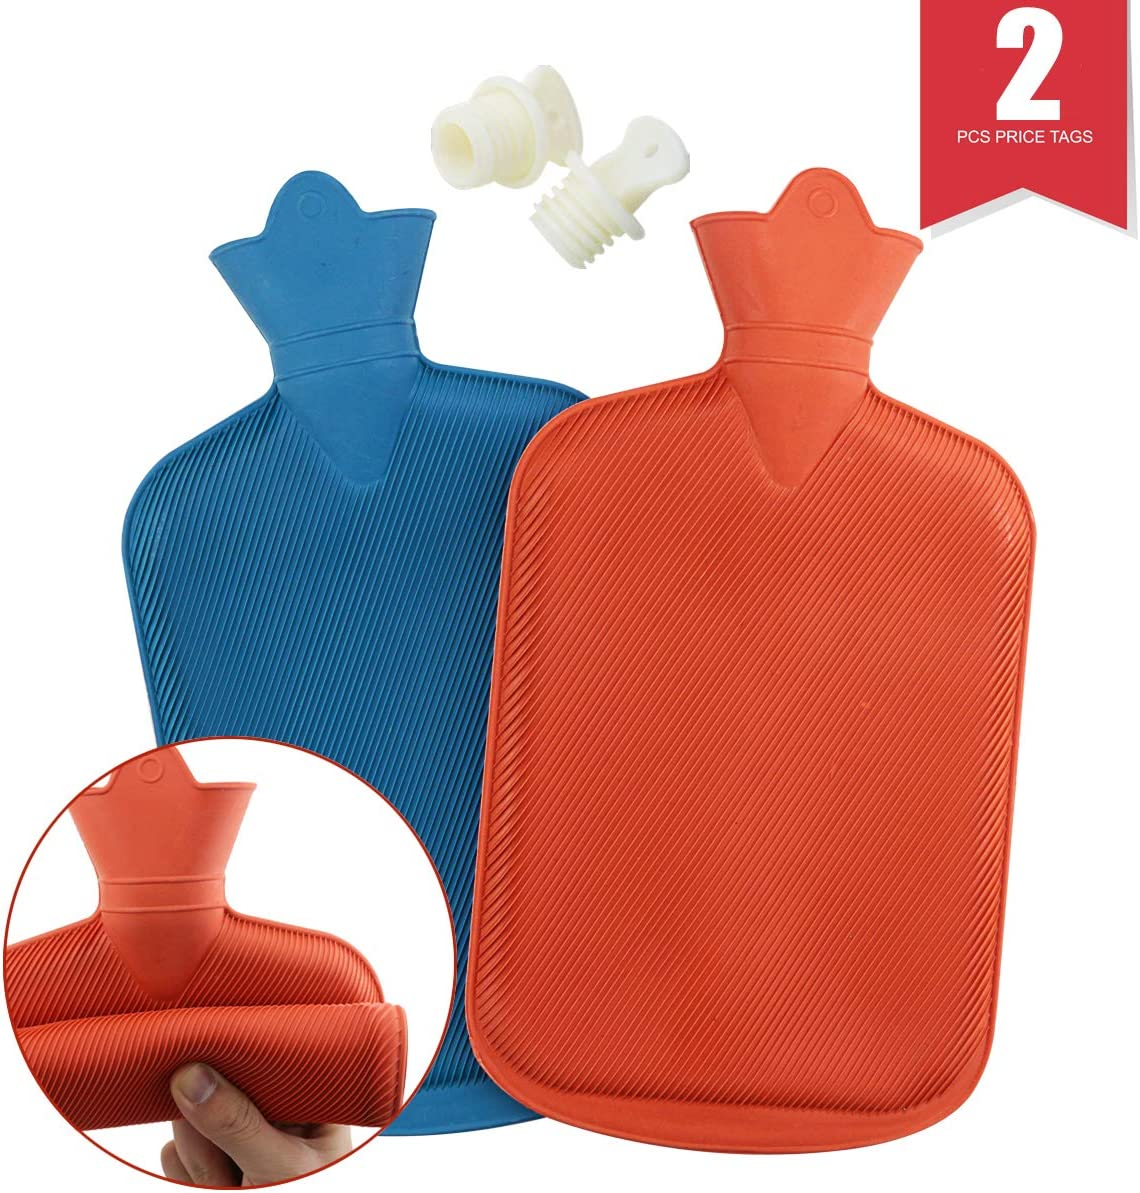 WTSHOP 2 Pack Premium Simple Rubber 2L Hot Water Bag(an Orange one and a Blue one),Great for Pain Relief,Hot and Cold Therapy,Natural Rubber BPA Free-Durable Hot Water Bottle